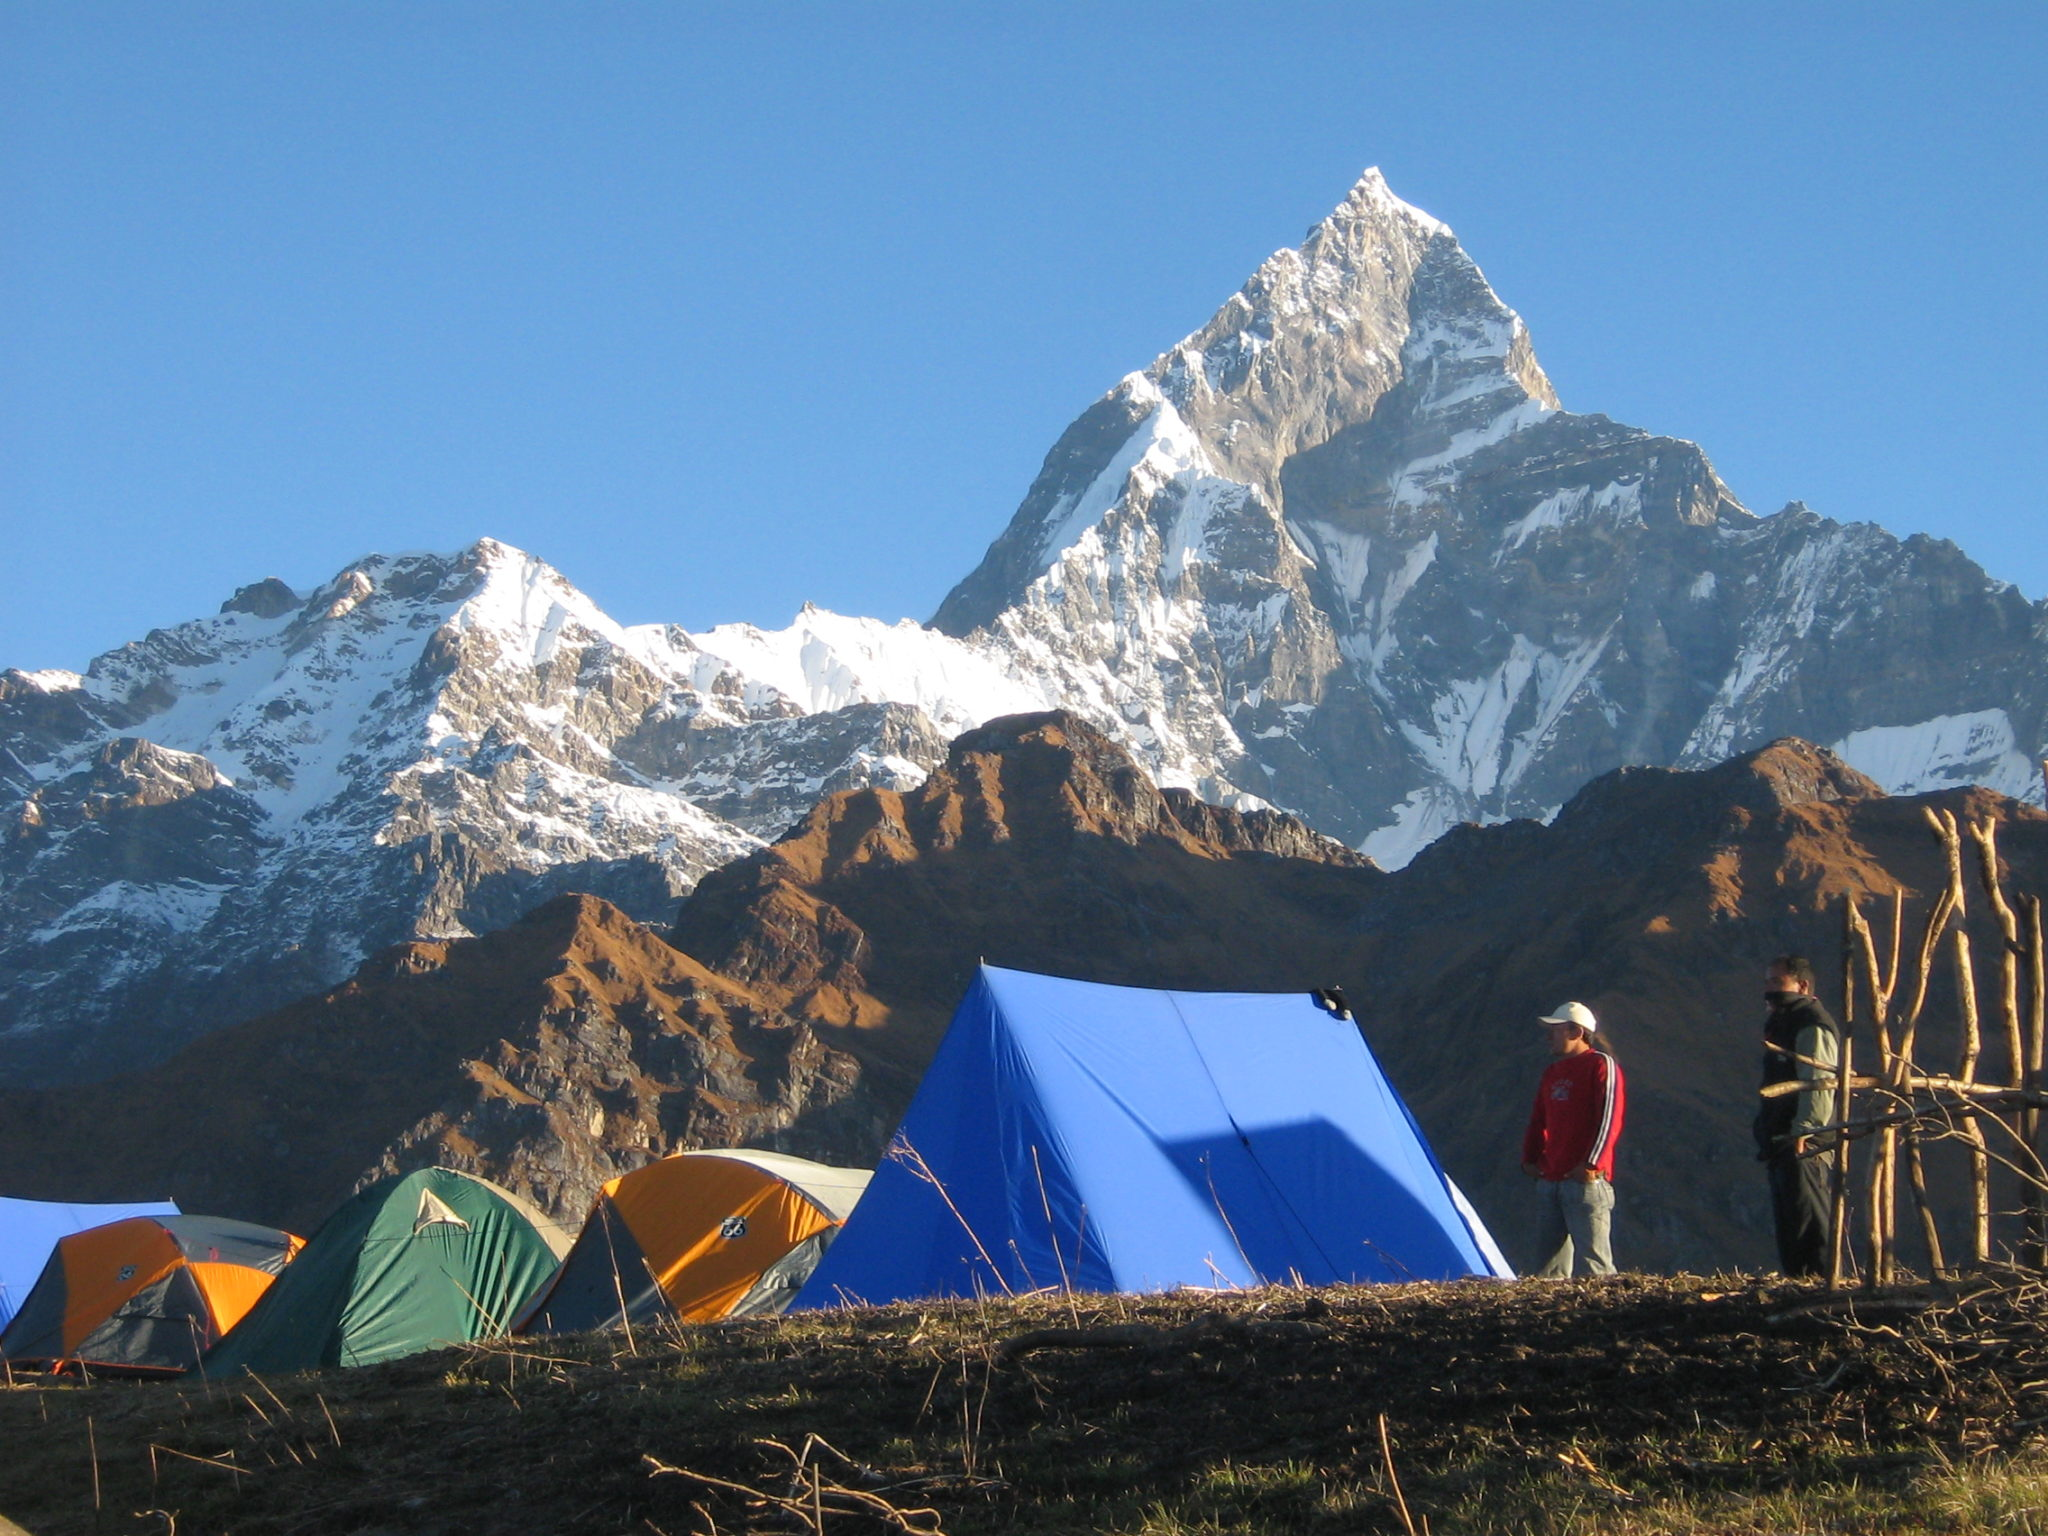 Machhapuchre mountain from pokhara nepal